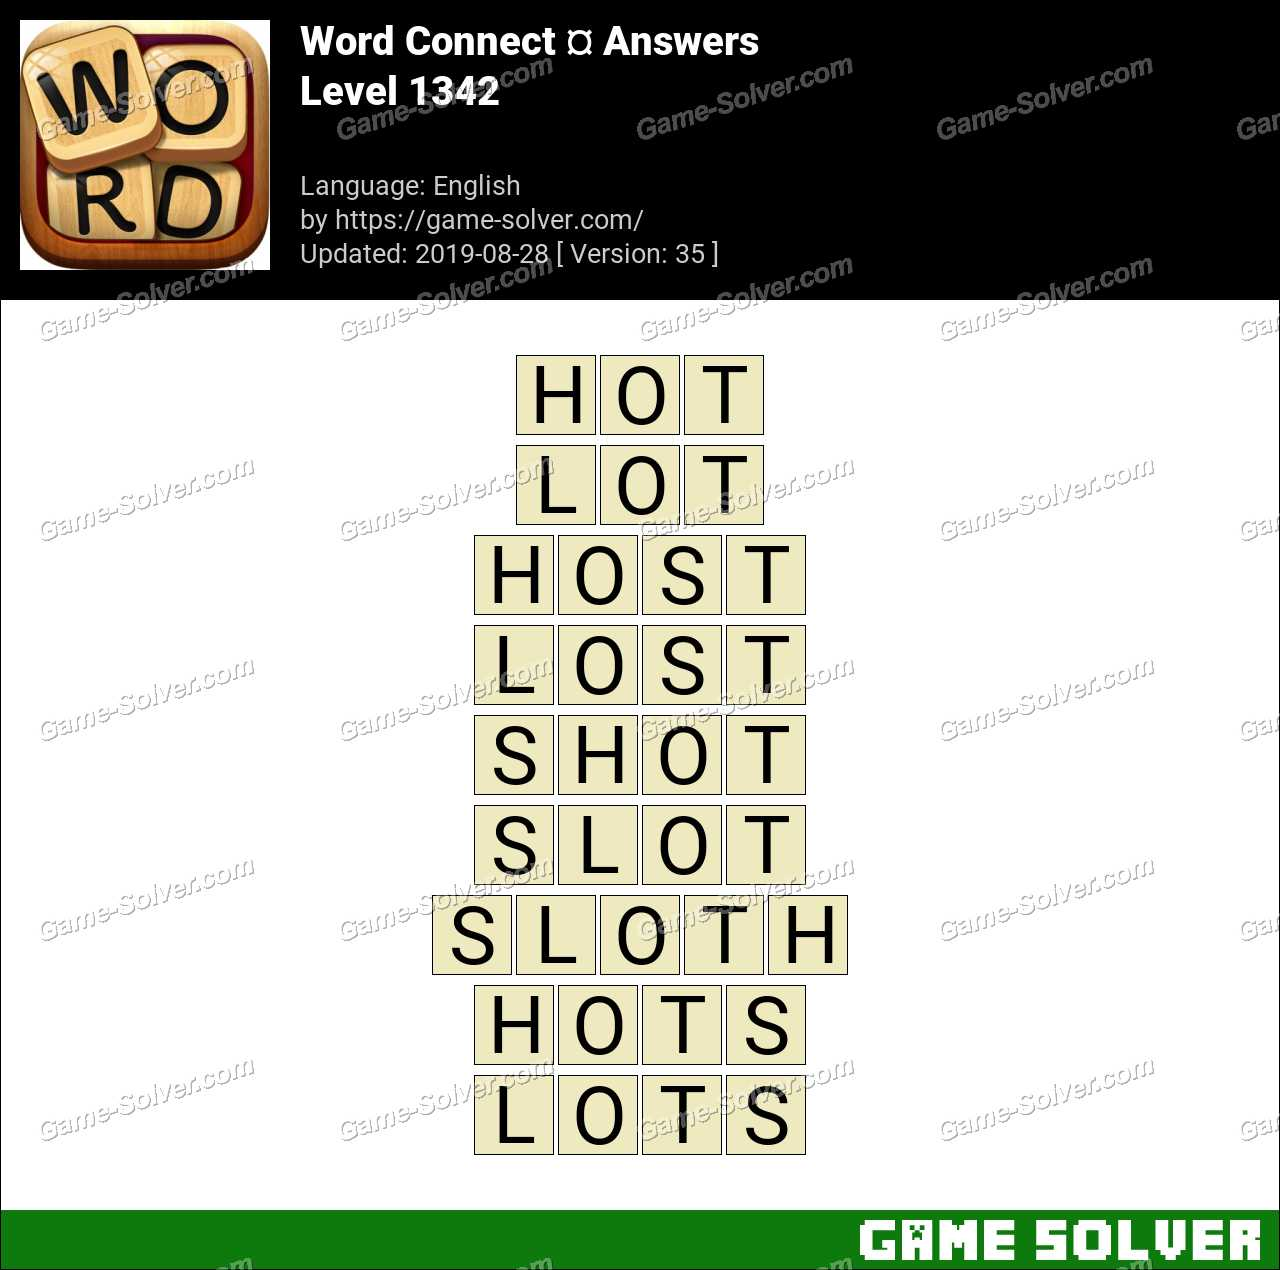 Word Connect Level 1342 Answers